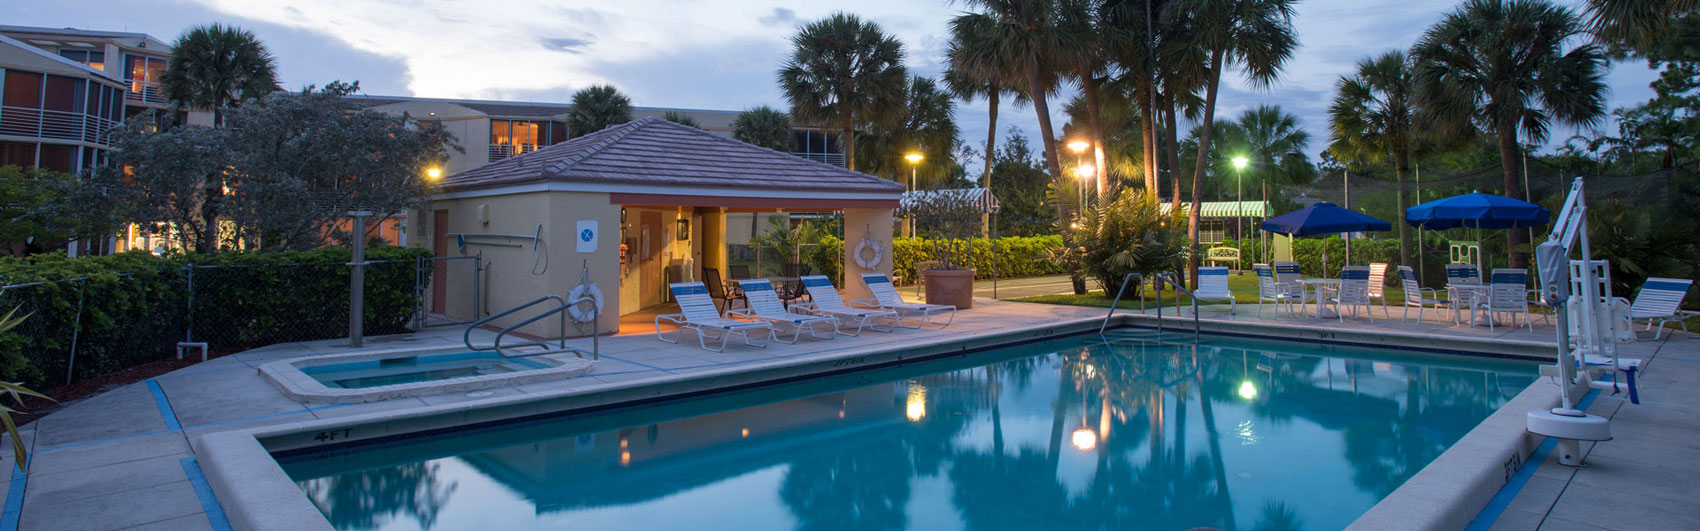 Outdoor pool at Abbey Delray South a senior living community in Delray Beach Florida